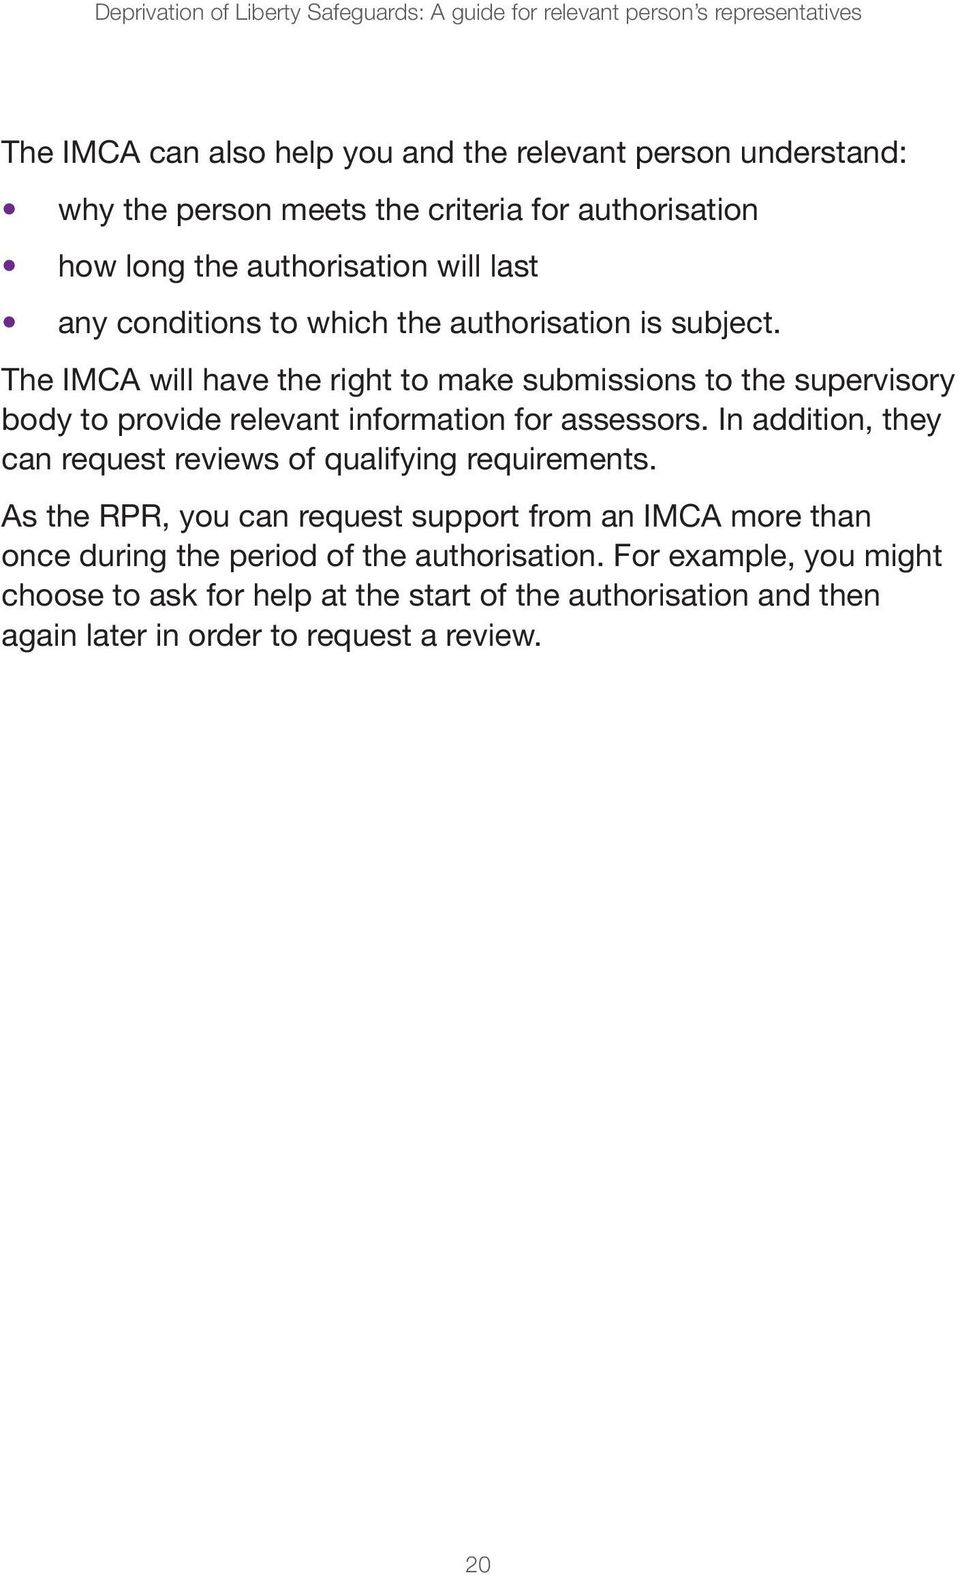 The IMCA will have the right to make submissions to the supervisory body to provide relevant information for assessors.